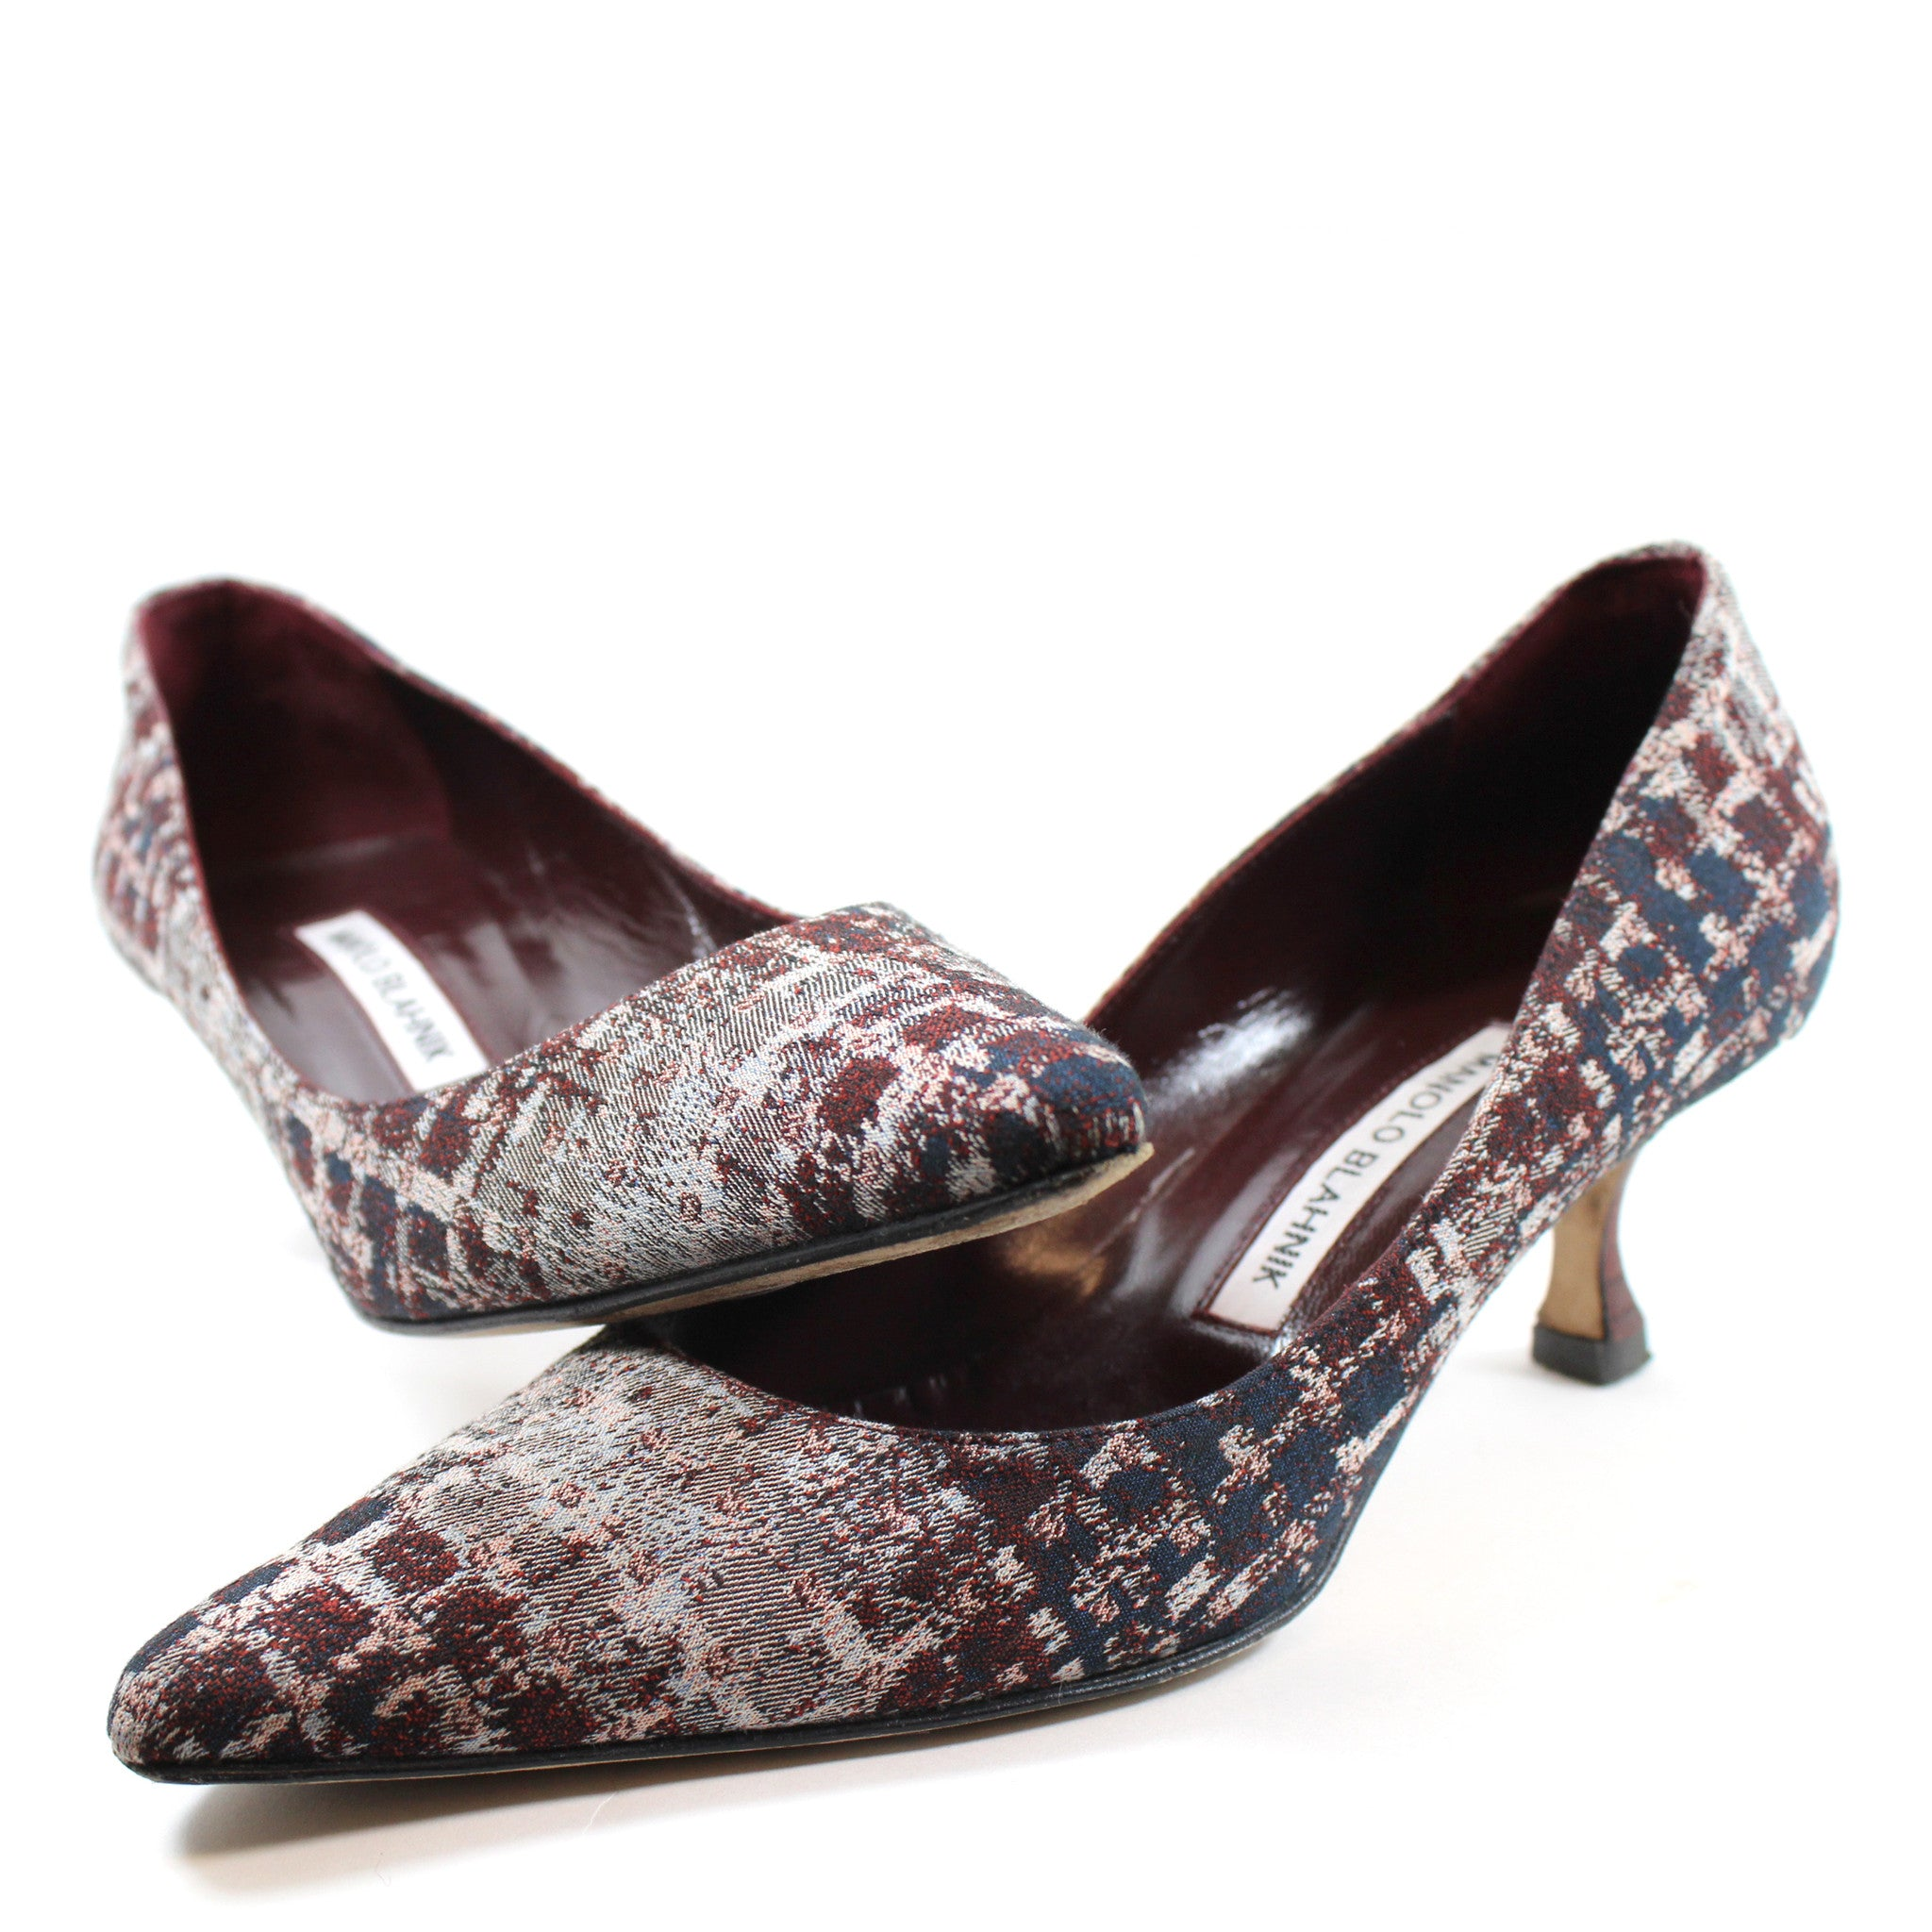 Manolo Blahnik Distressed Grid Print Pumps (Size 36.5)